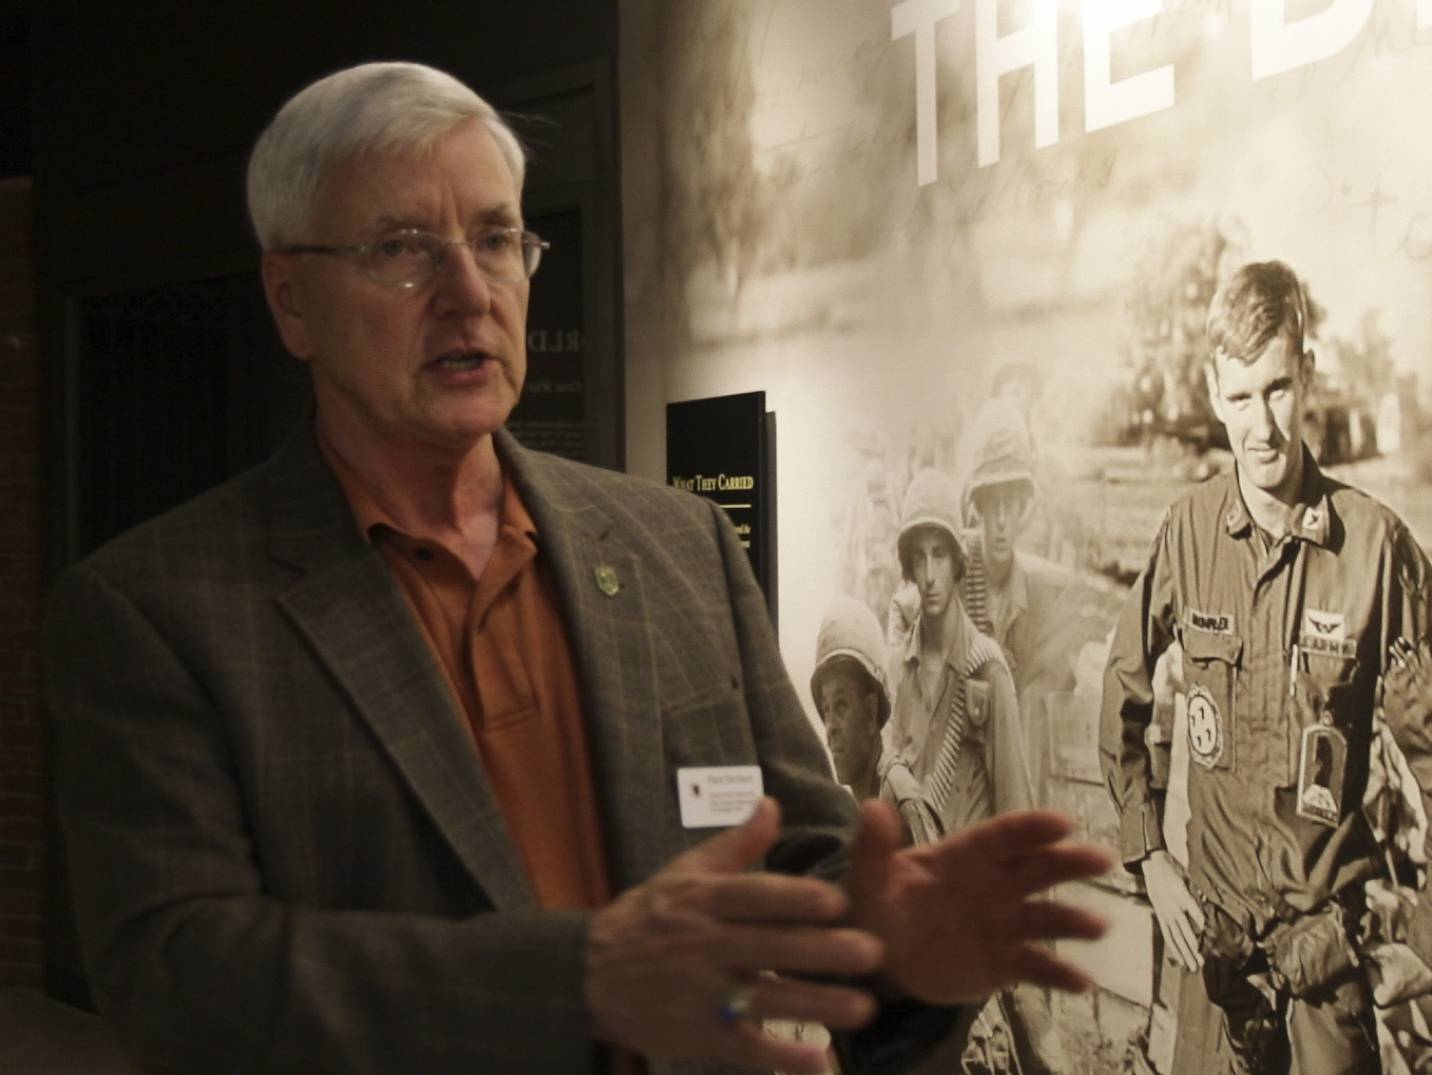 """The guiding ethos was to tell the soldier's story and stories properly with respect and authenticity, and then tie that story to the greater story of the United States and who we are as a society and as a country,"" First Division Museum Executive Director Paul Herbert said of his role."